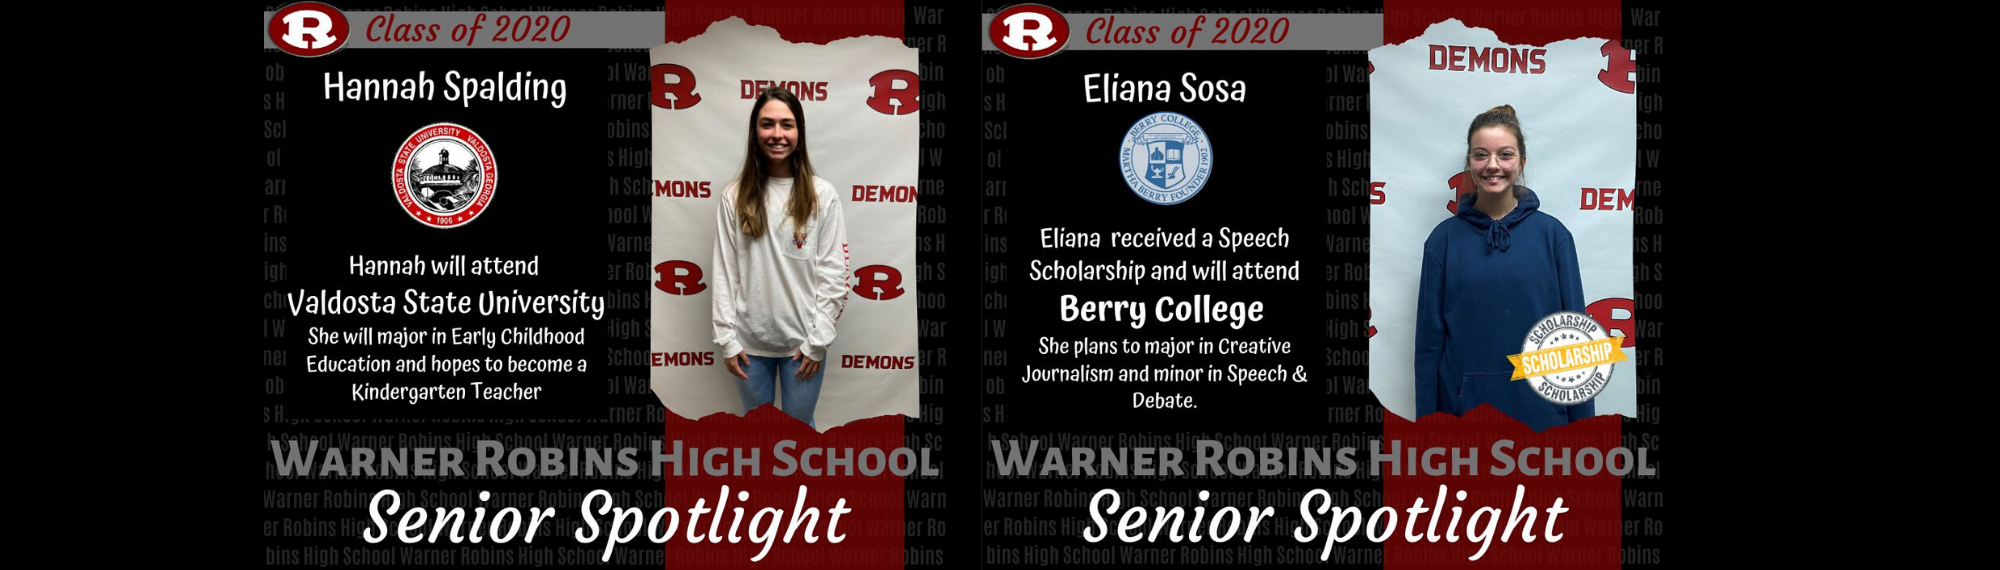 Senior Spotlight 4